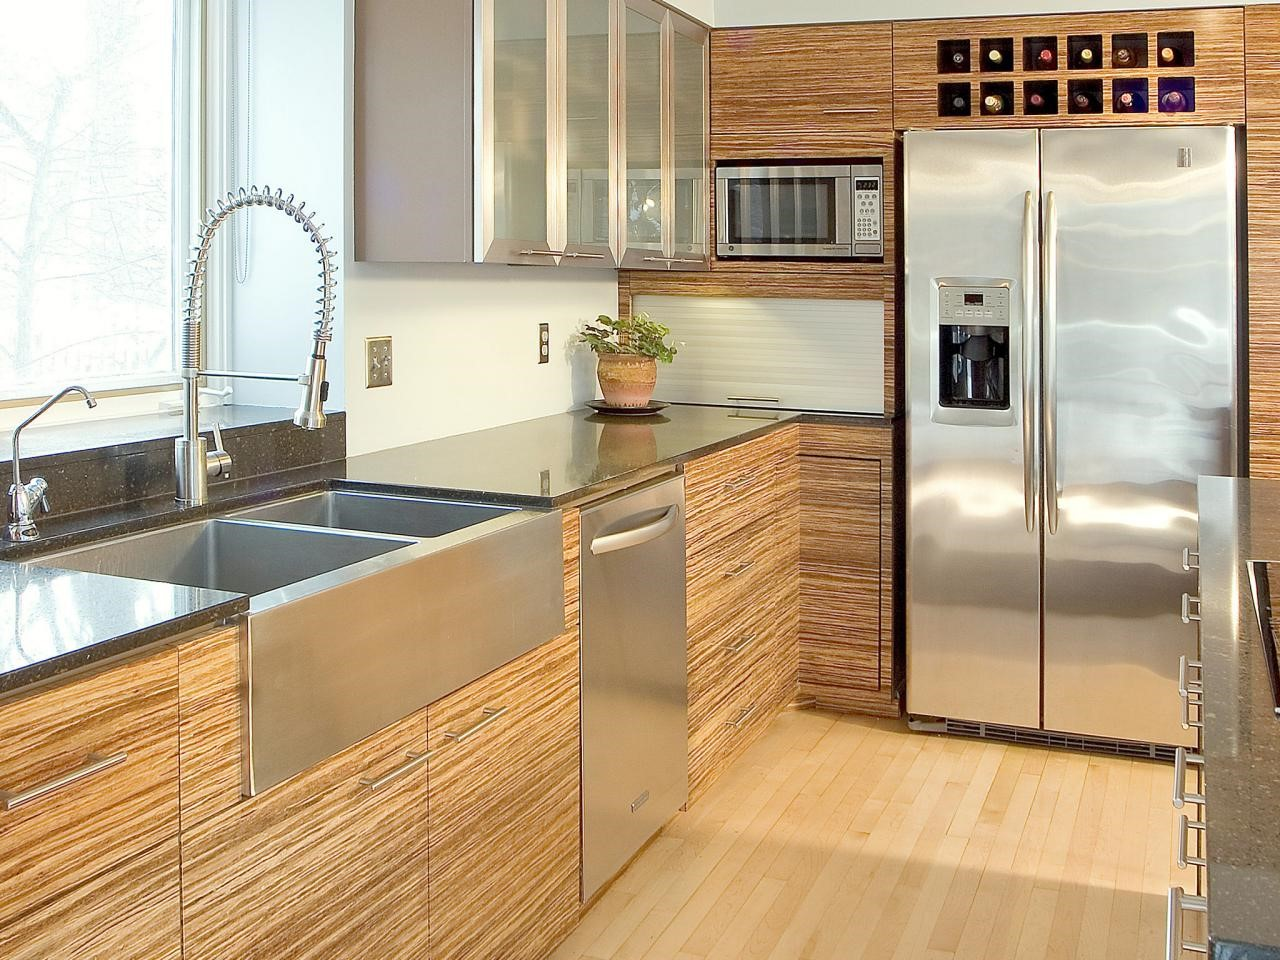 What Should Know Before Kitchen Remodeling Change